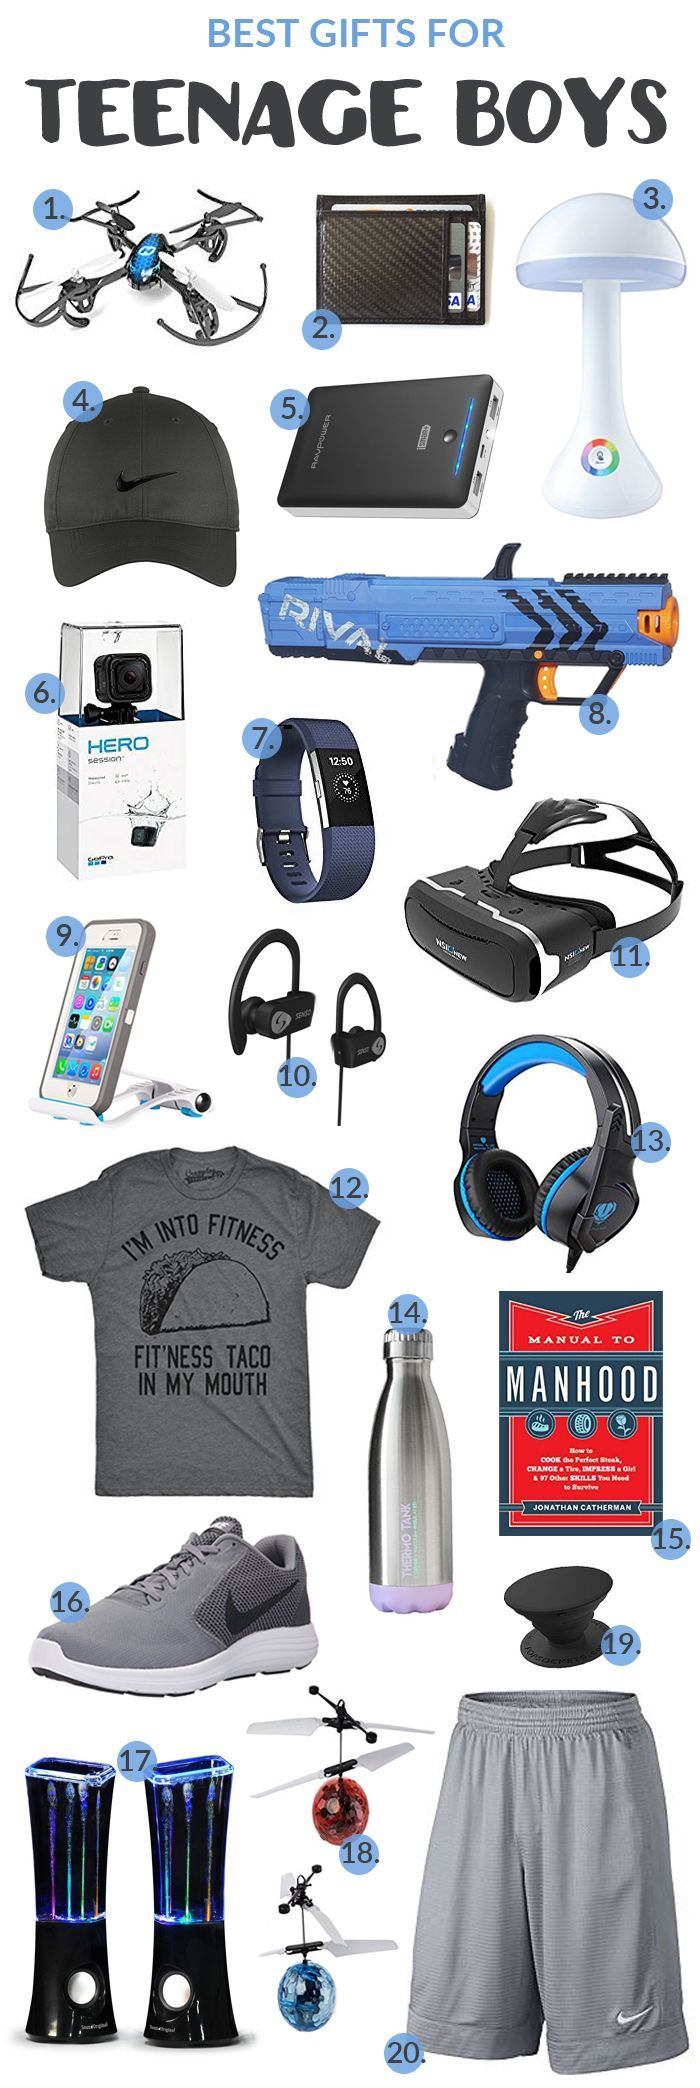 Gift Ideas For Him Teenage Boys Here Are Some Great Gifts